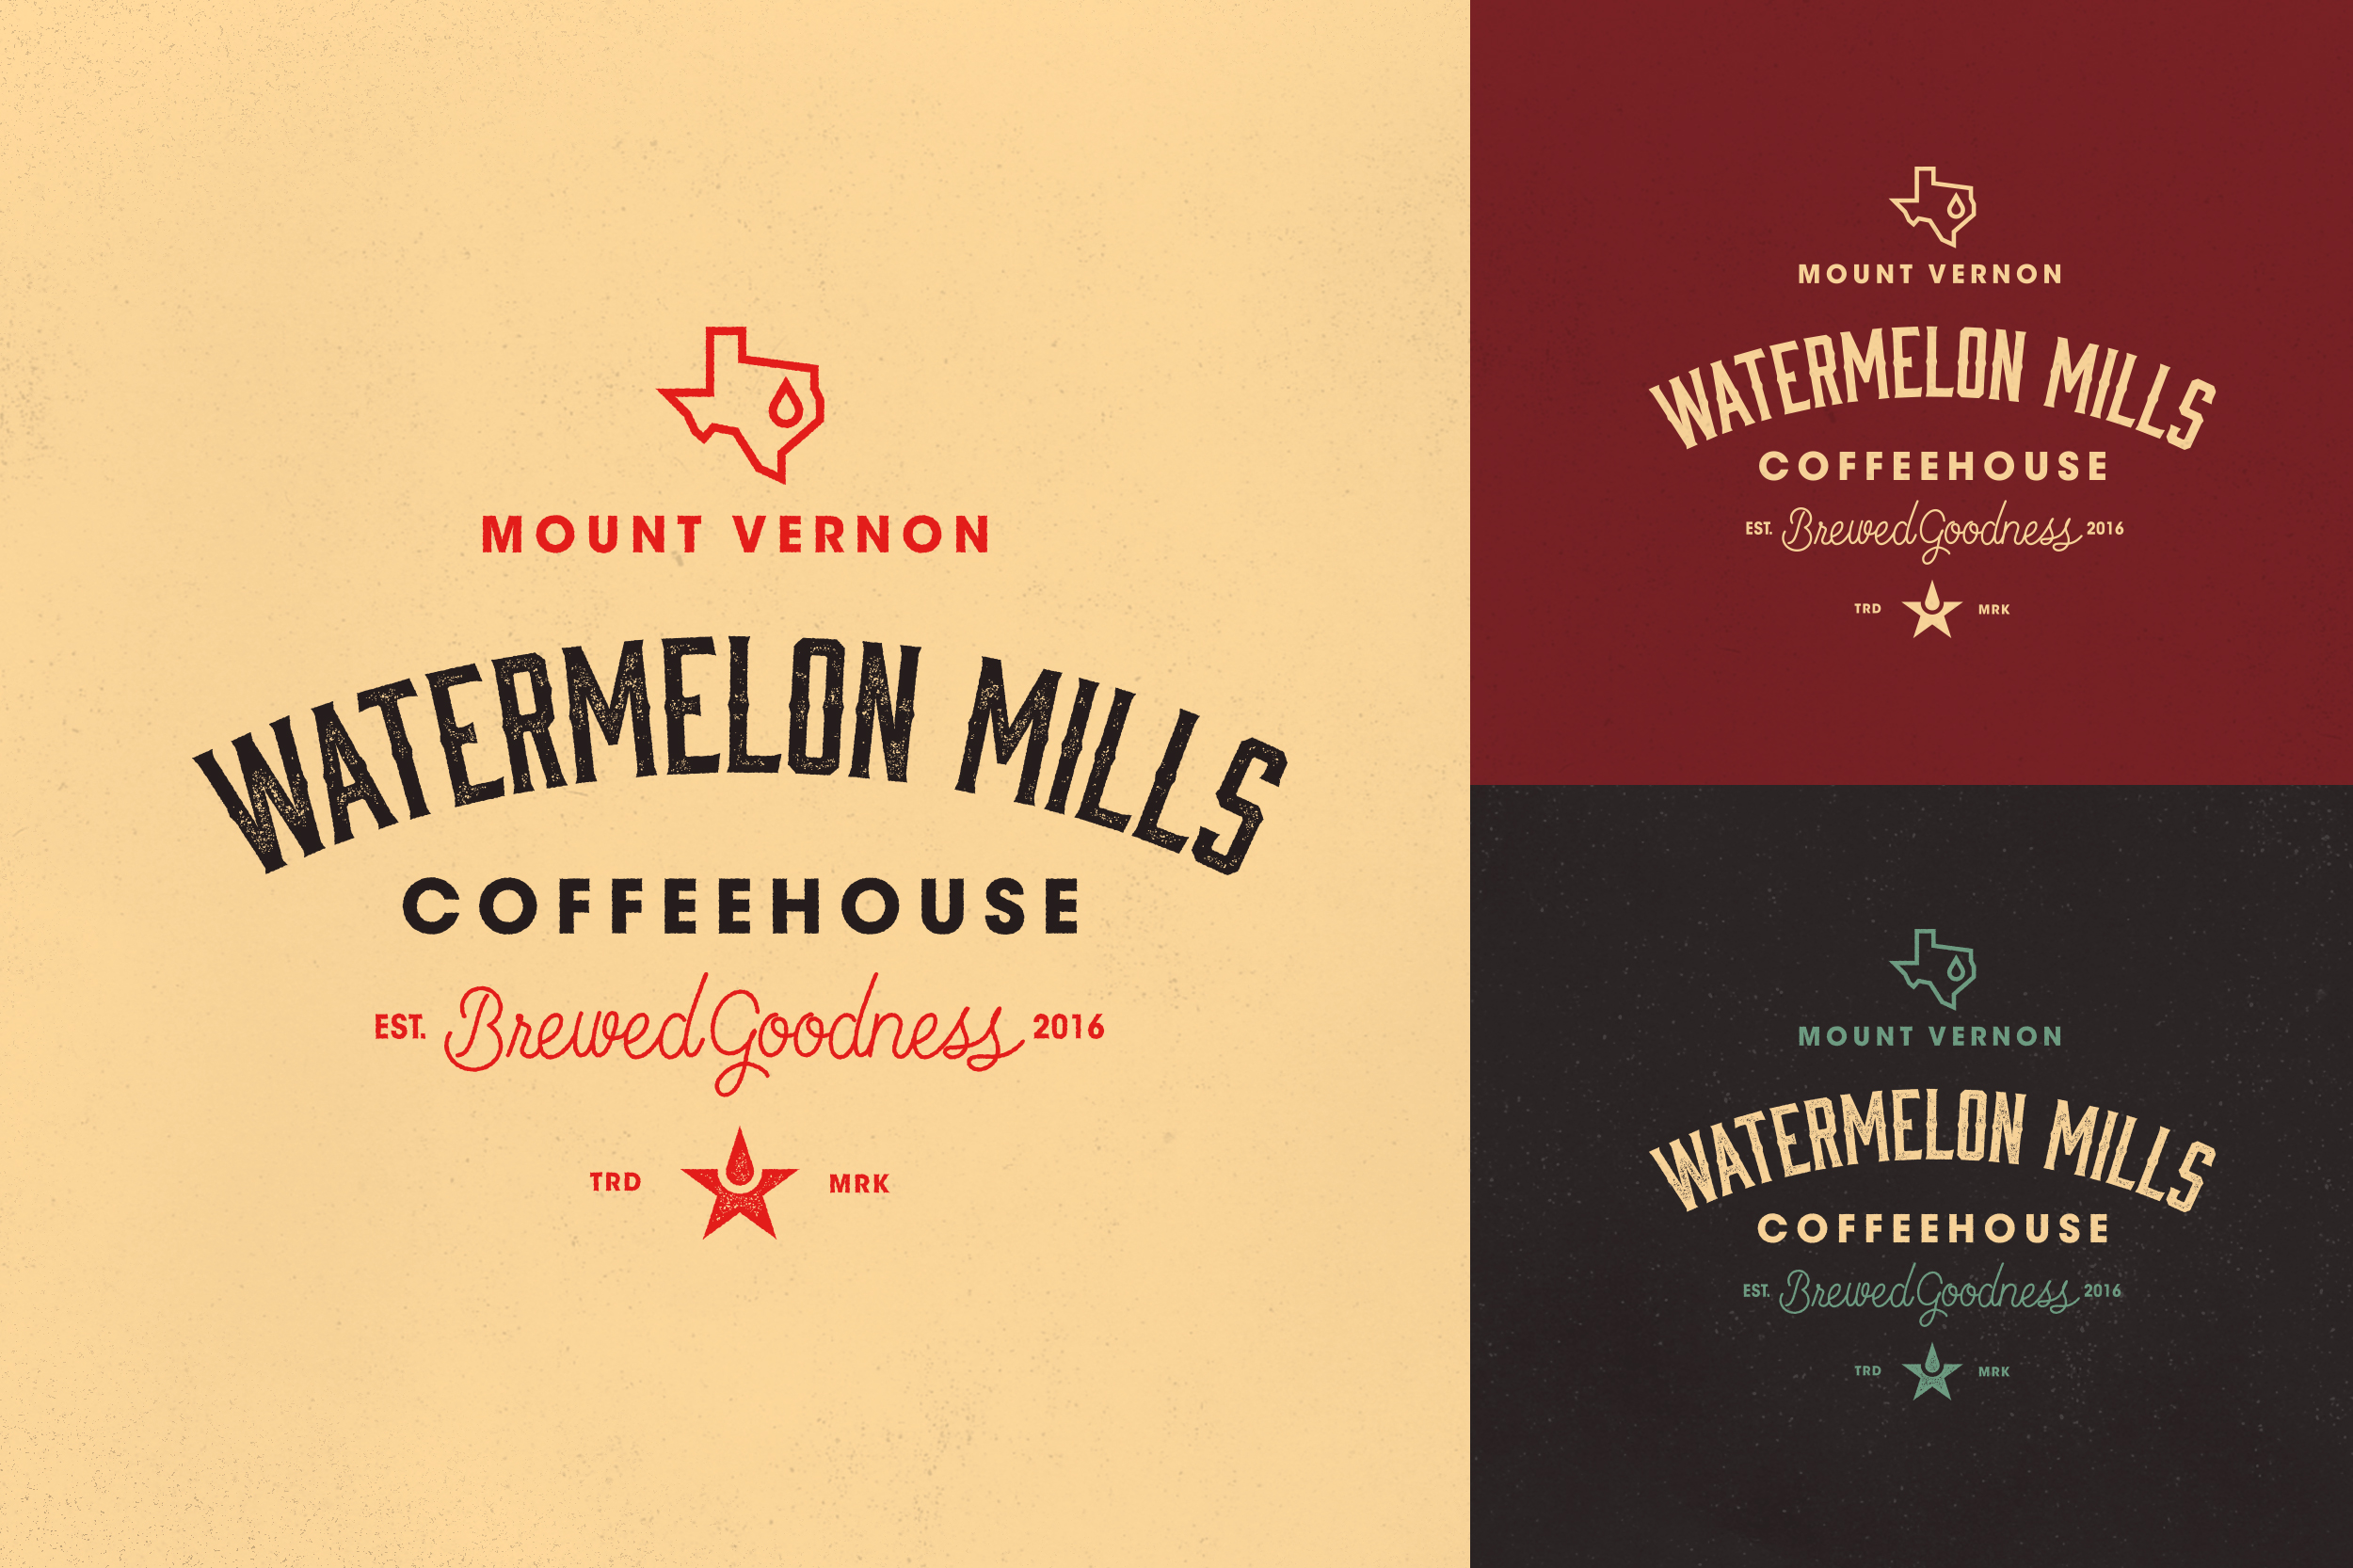 Watermelon Mills logo